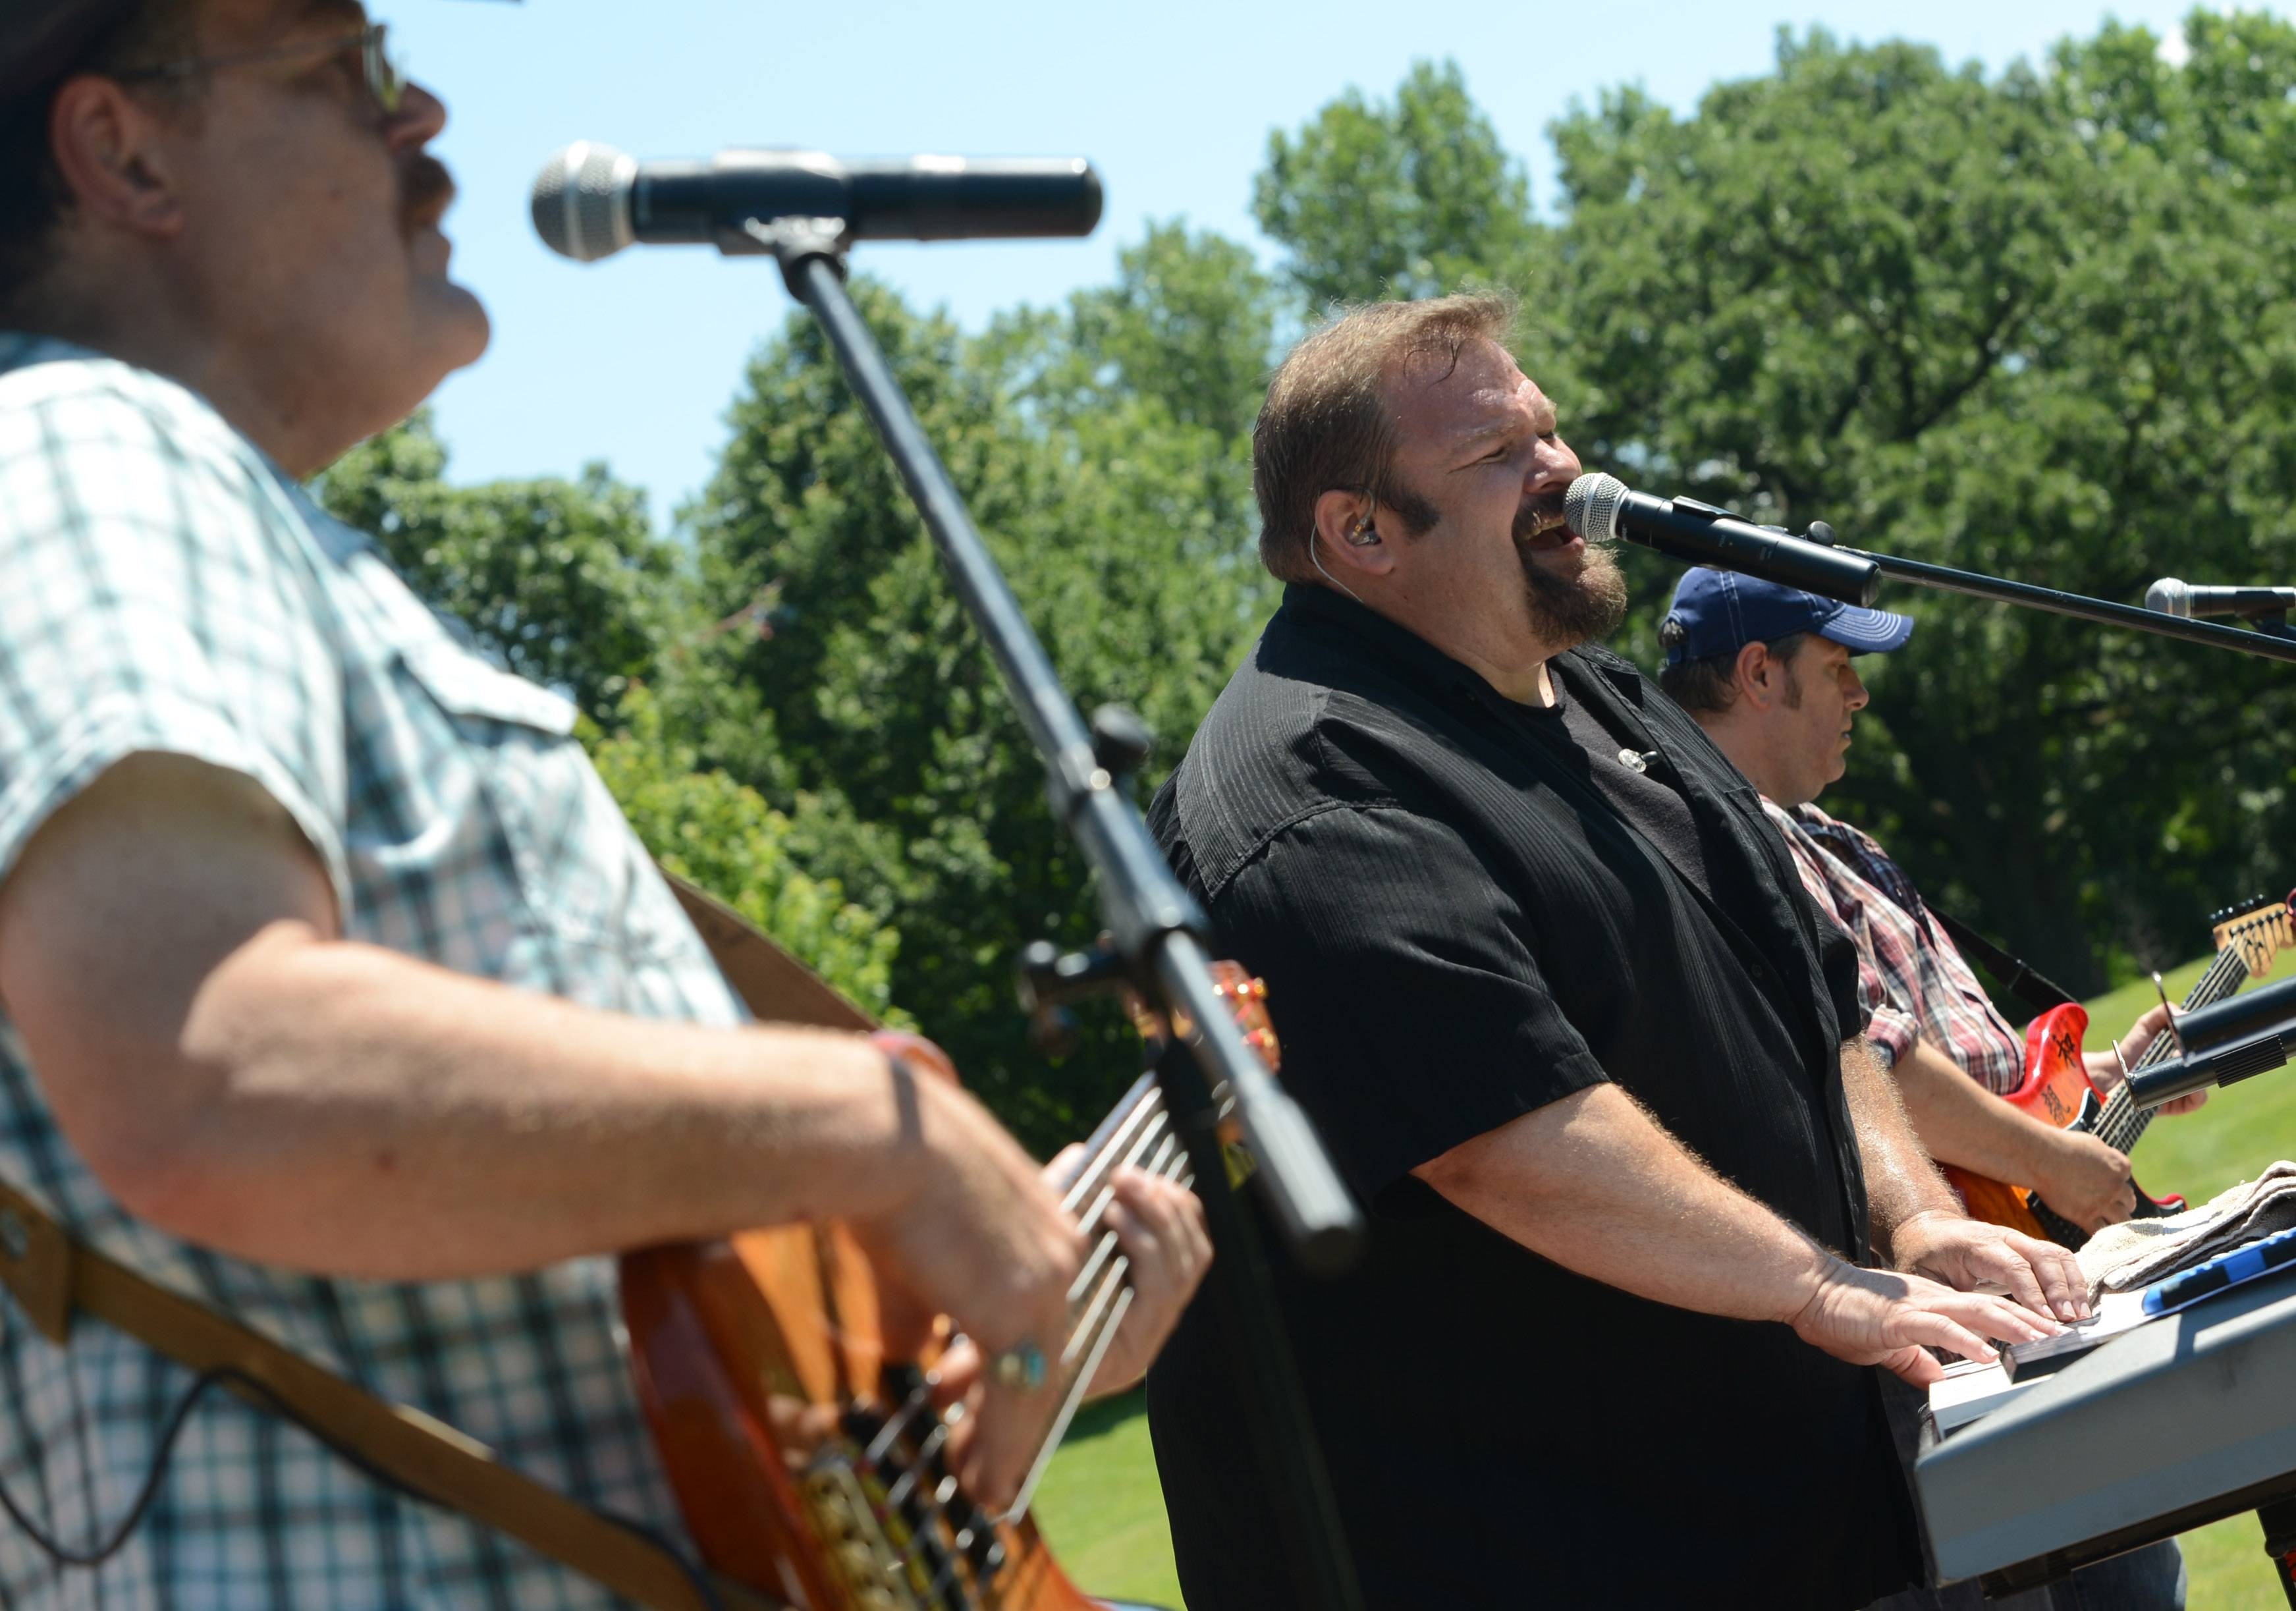 Members of Stateline County Band from left Dennis Myers, Robert Jess and Mark Villarreal perform at the Lake Zurich Fourth of July family day at Paulus Park.